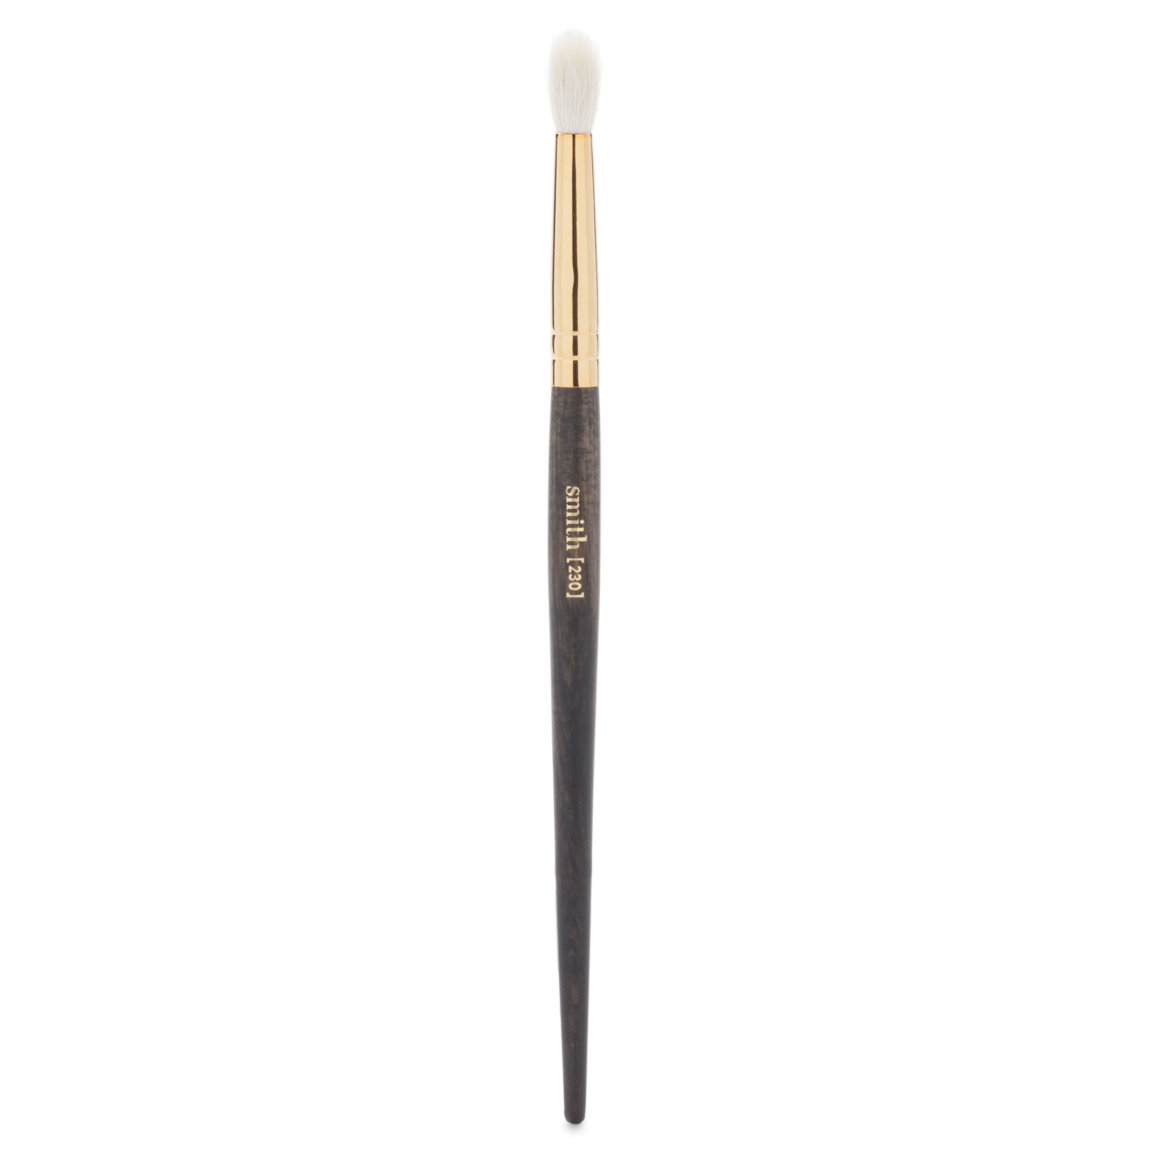 Smith Cosmetics 230 Quill Crease Brush Small product smear.